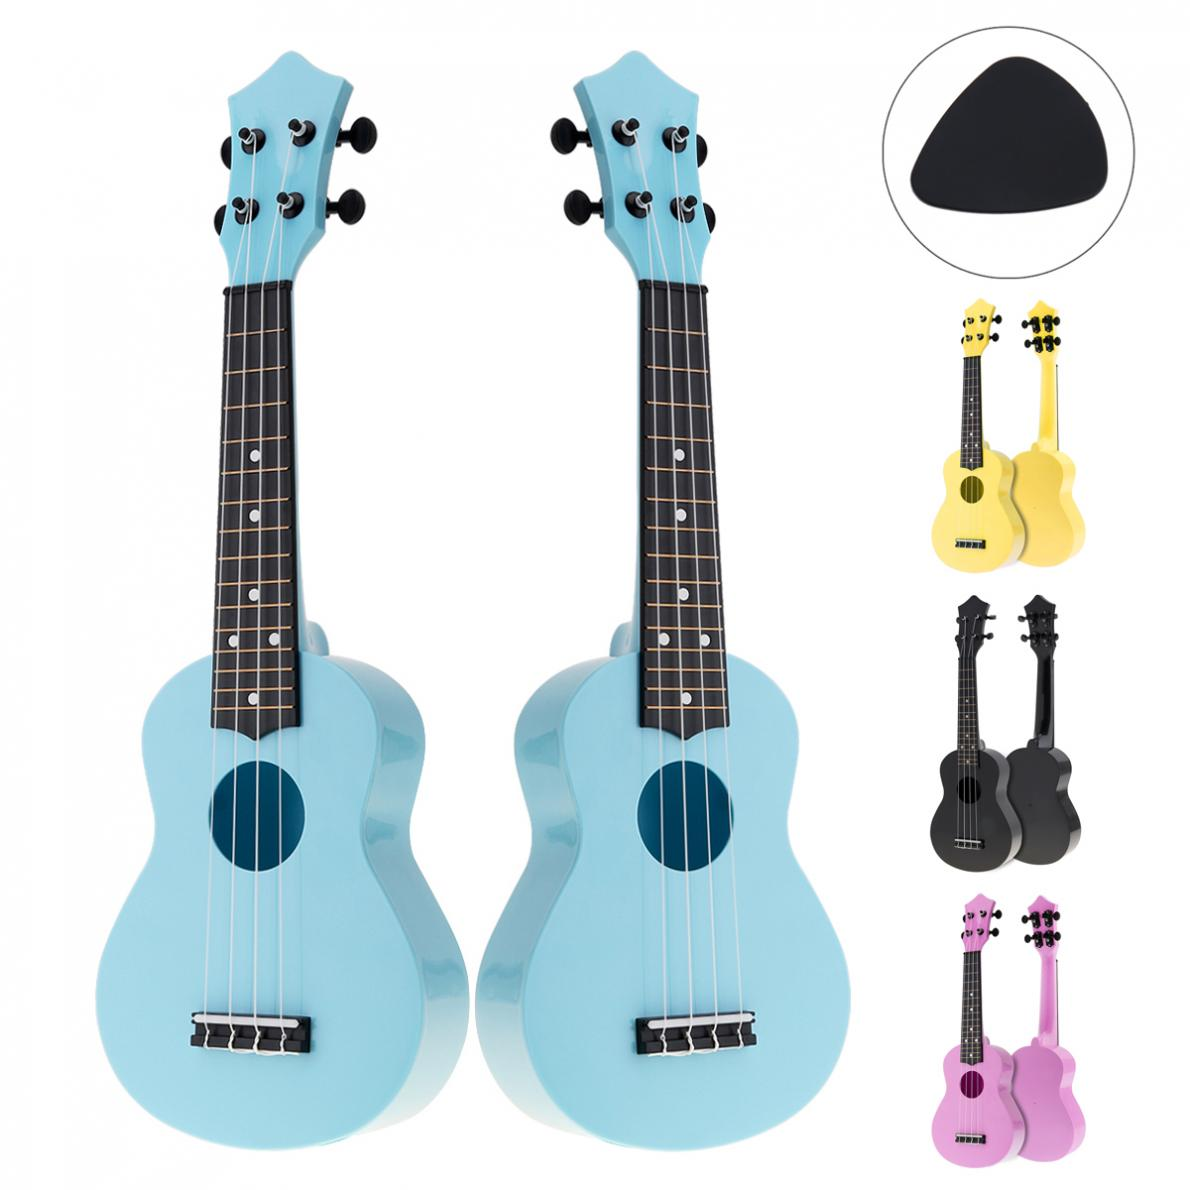 IRIN 21 Inch Colorful Acoustic Ukelele Uke 4 Strings Hawaii Guitar Guitarra Instrument For Kids And Music Beginner